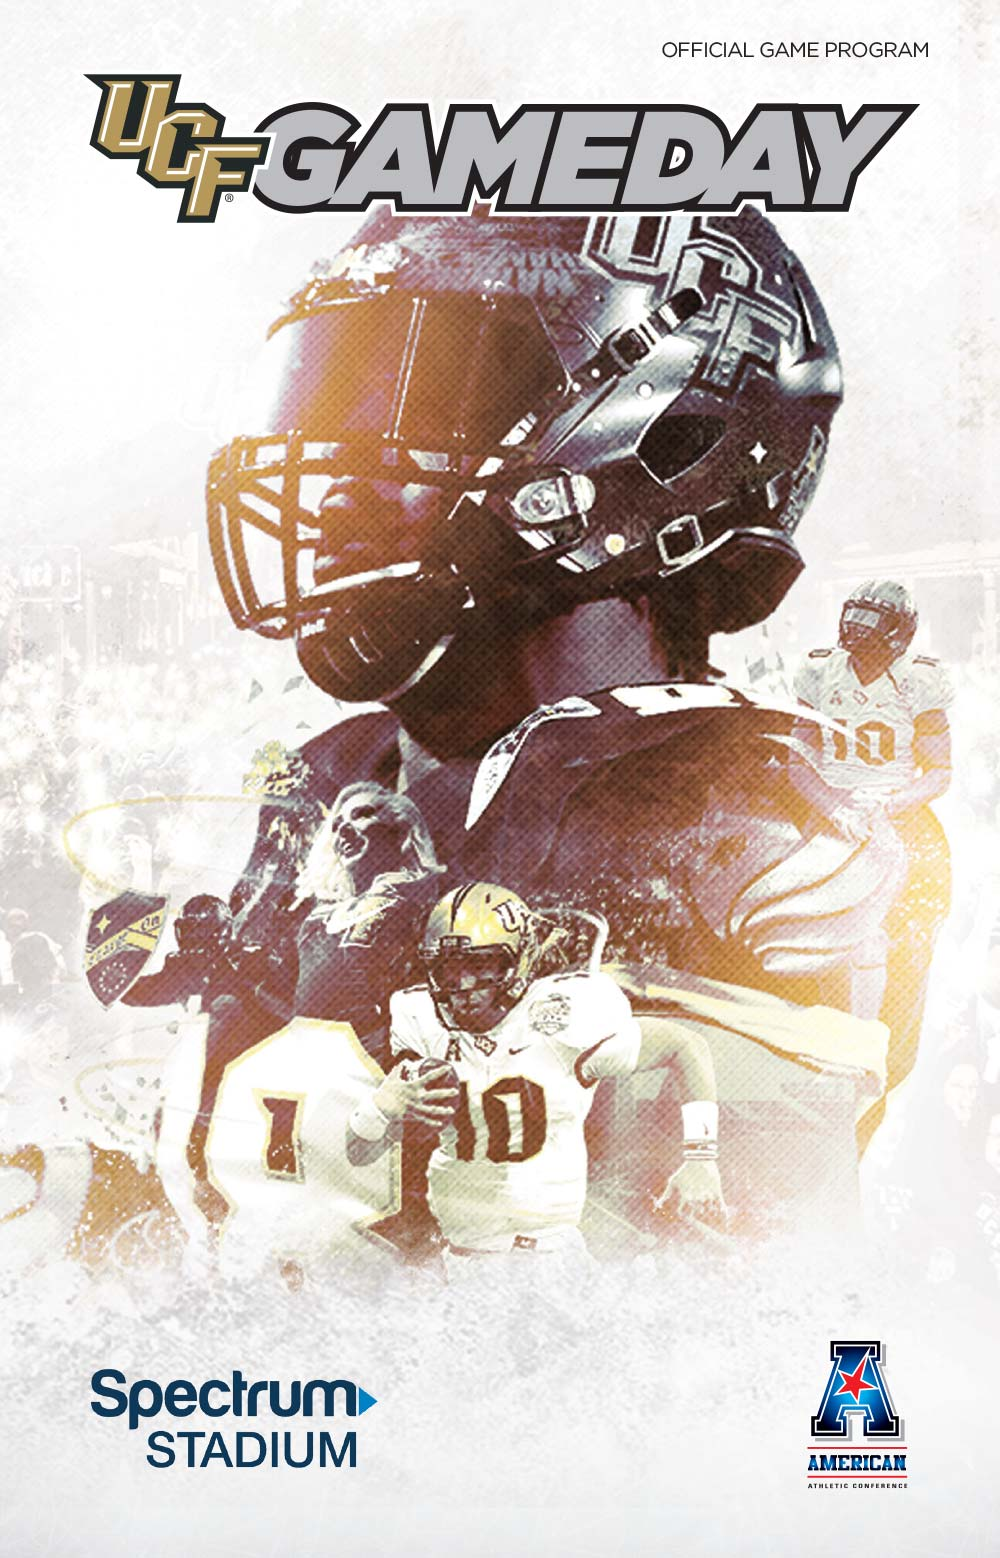 2018 Football Program Cover<br><span>University of Central Florida</span>